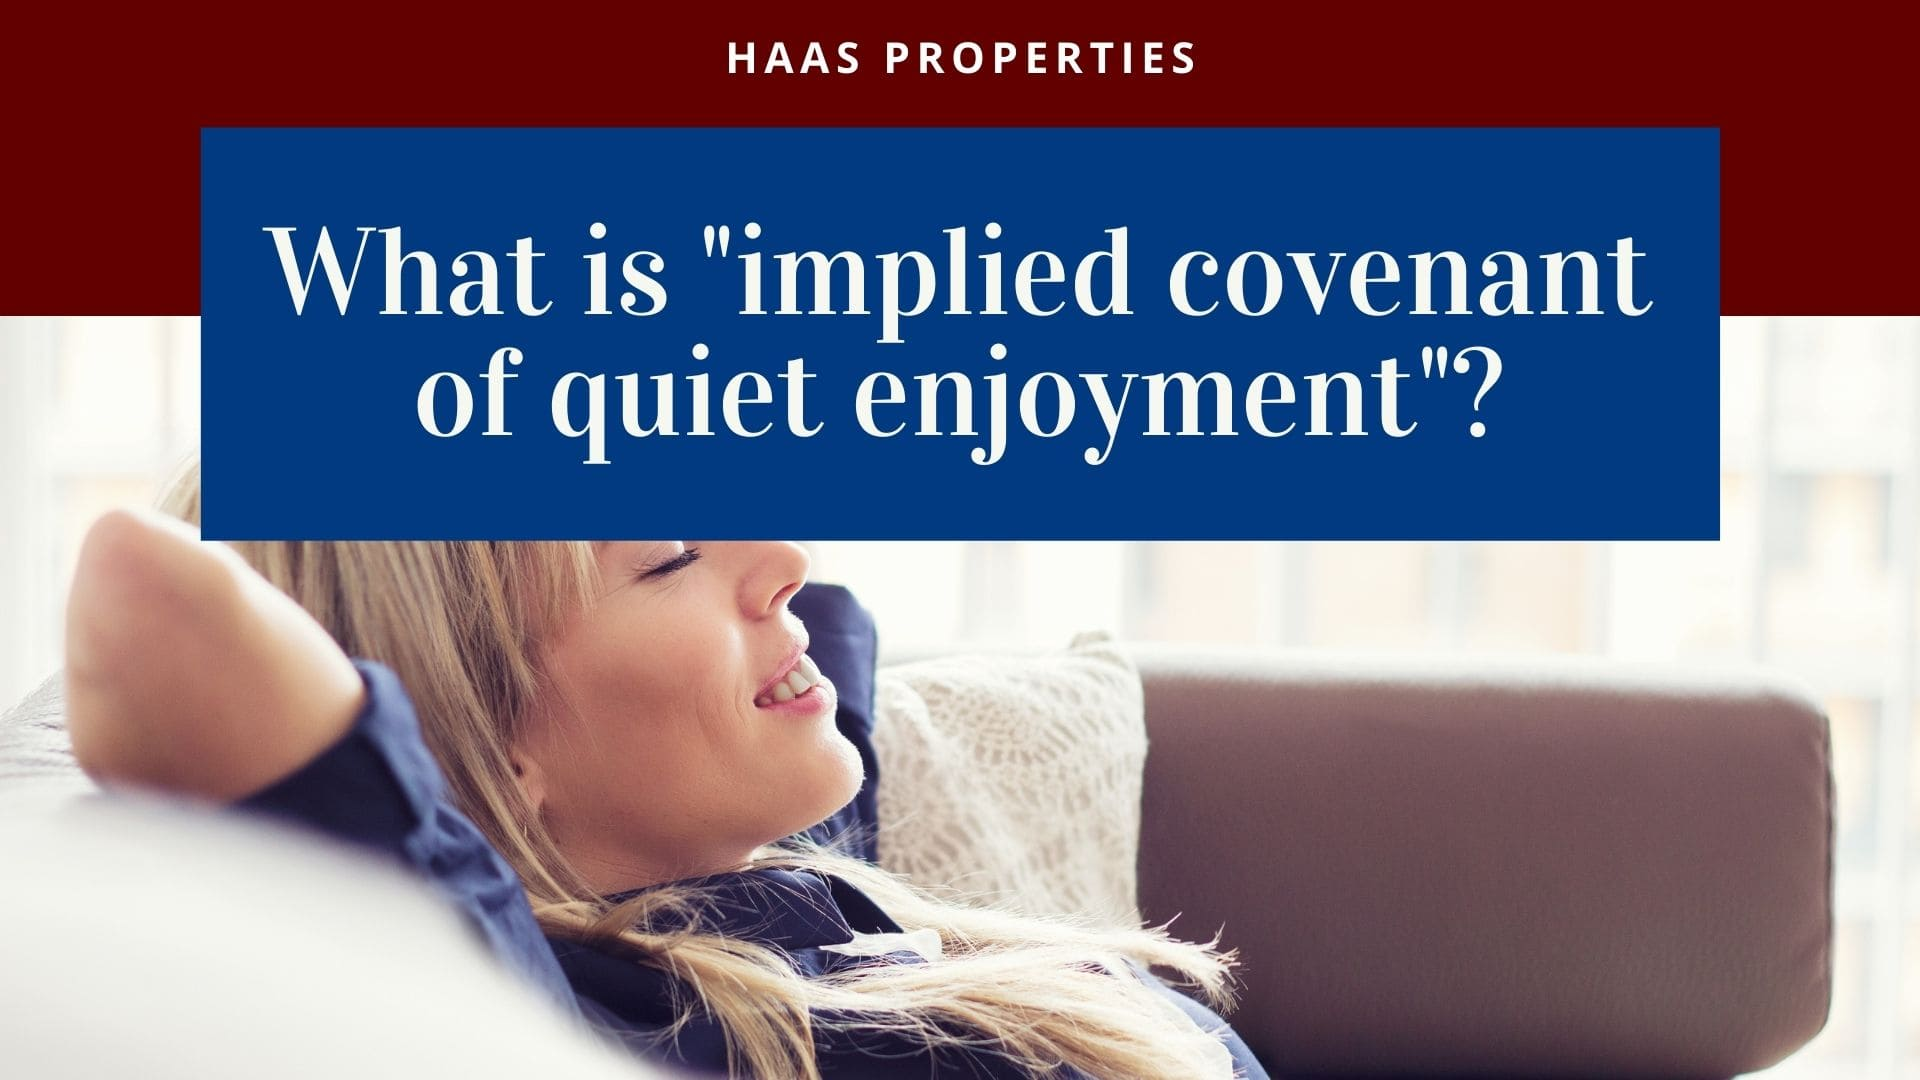 What is implied covenant of quiet enjoyment